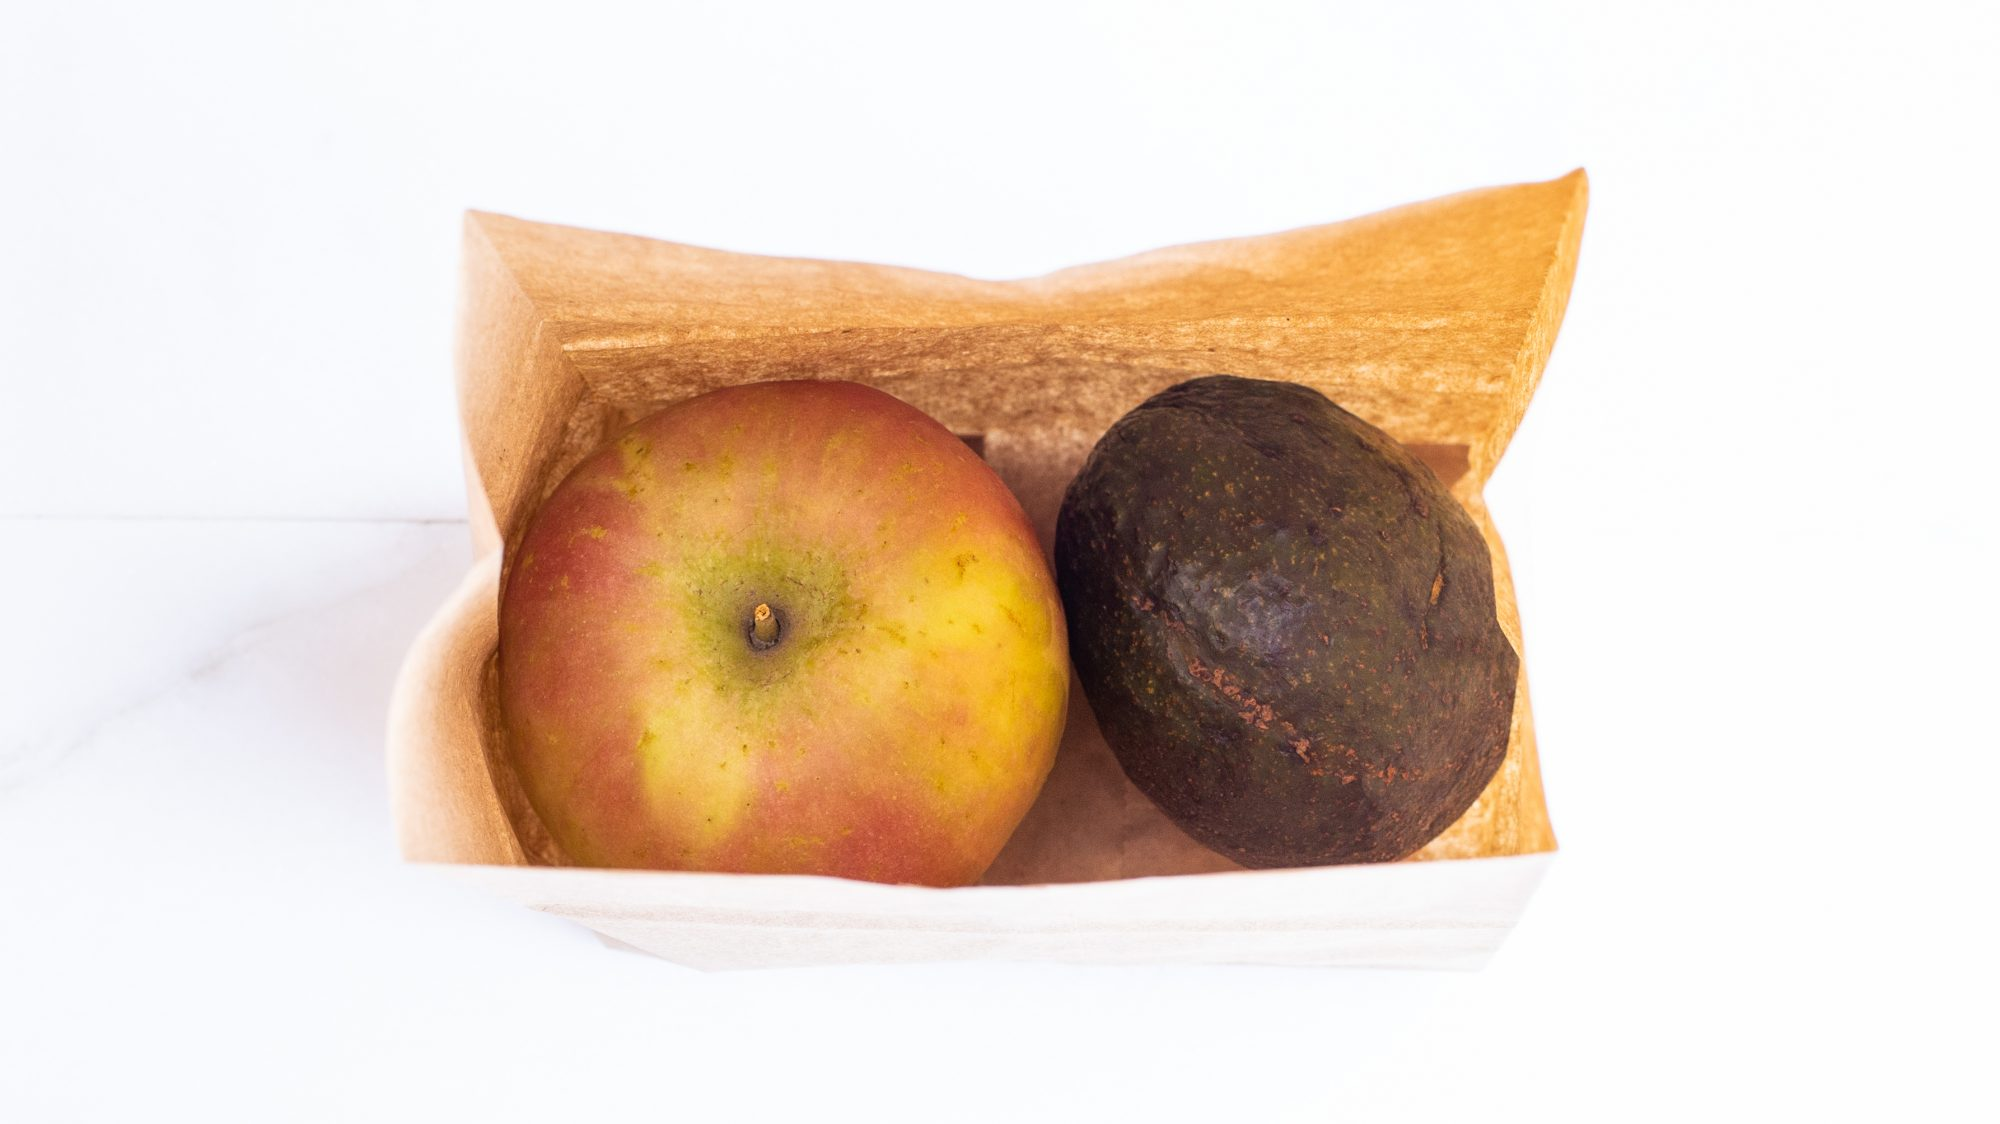 overhead view of avocado and apple in a brown paper bag